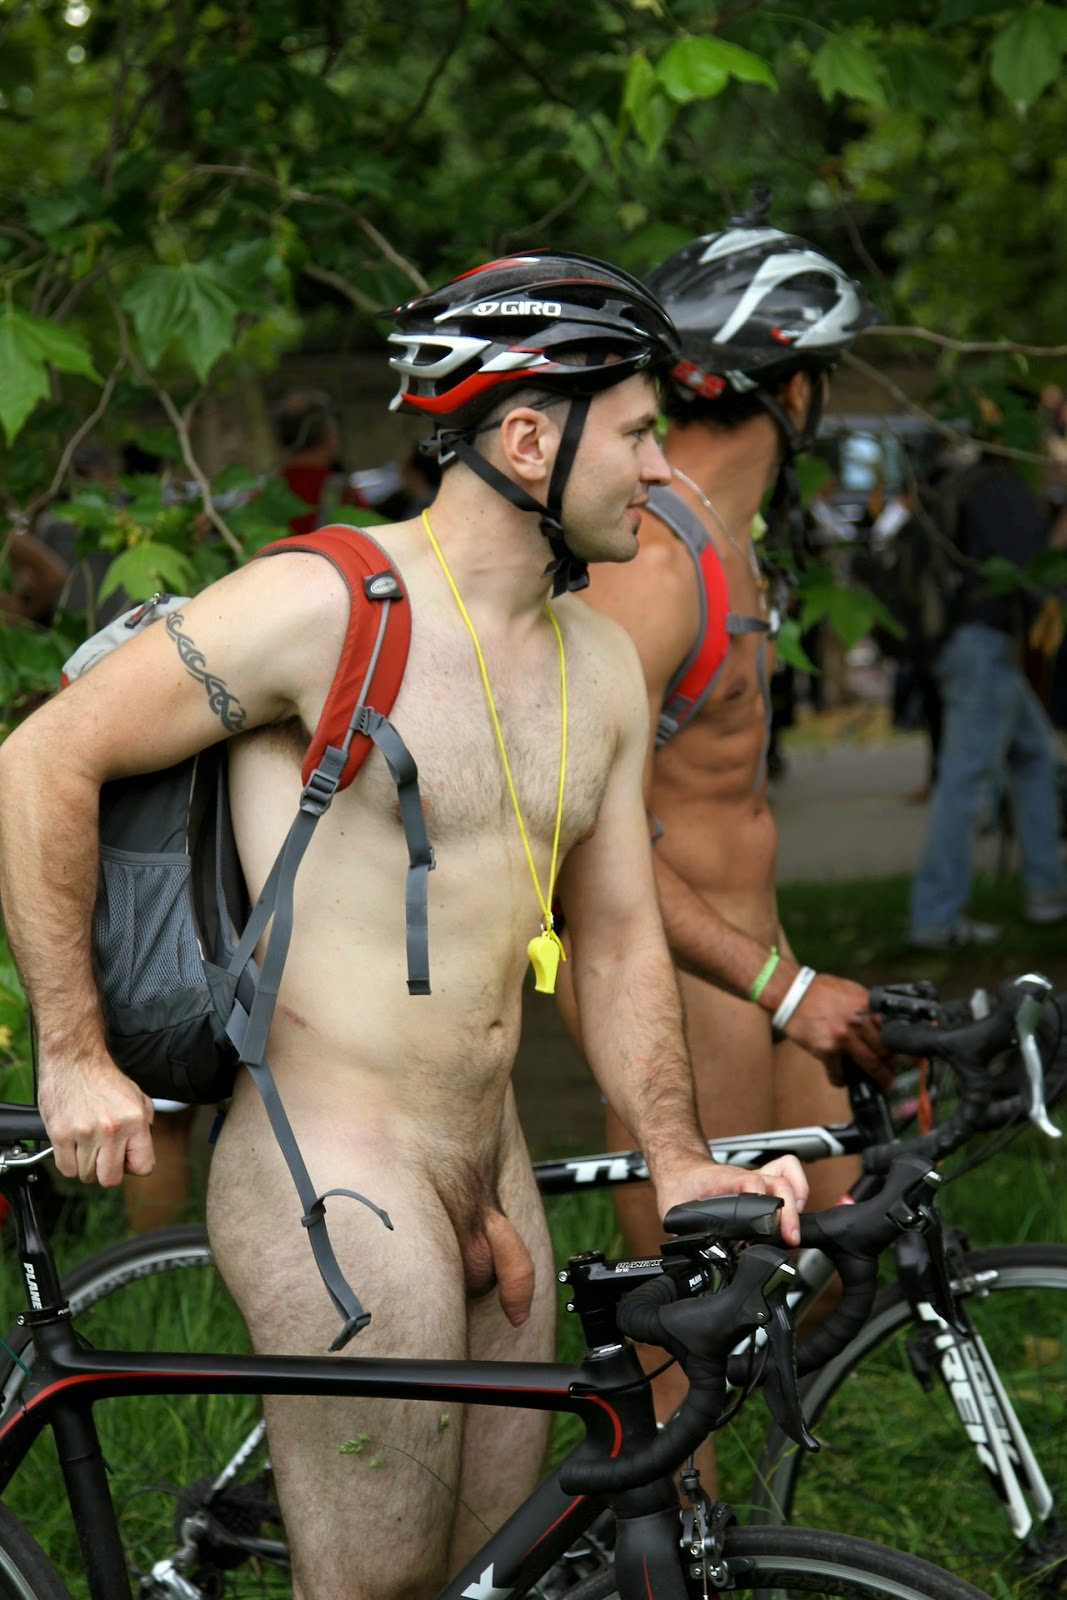 No boulder bikers ticketed for nudity